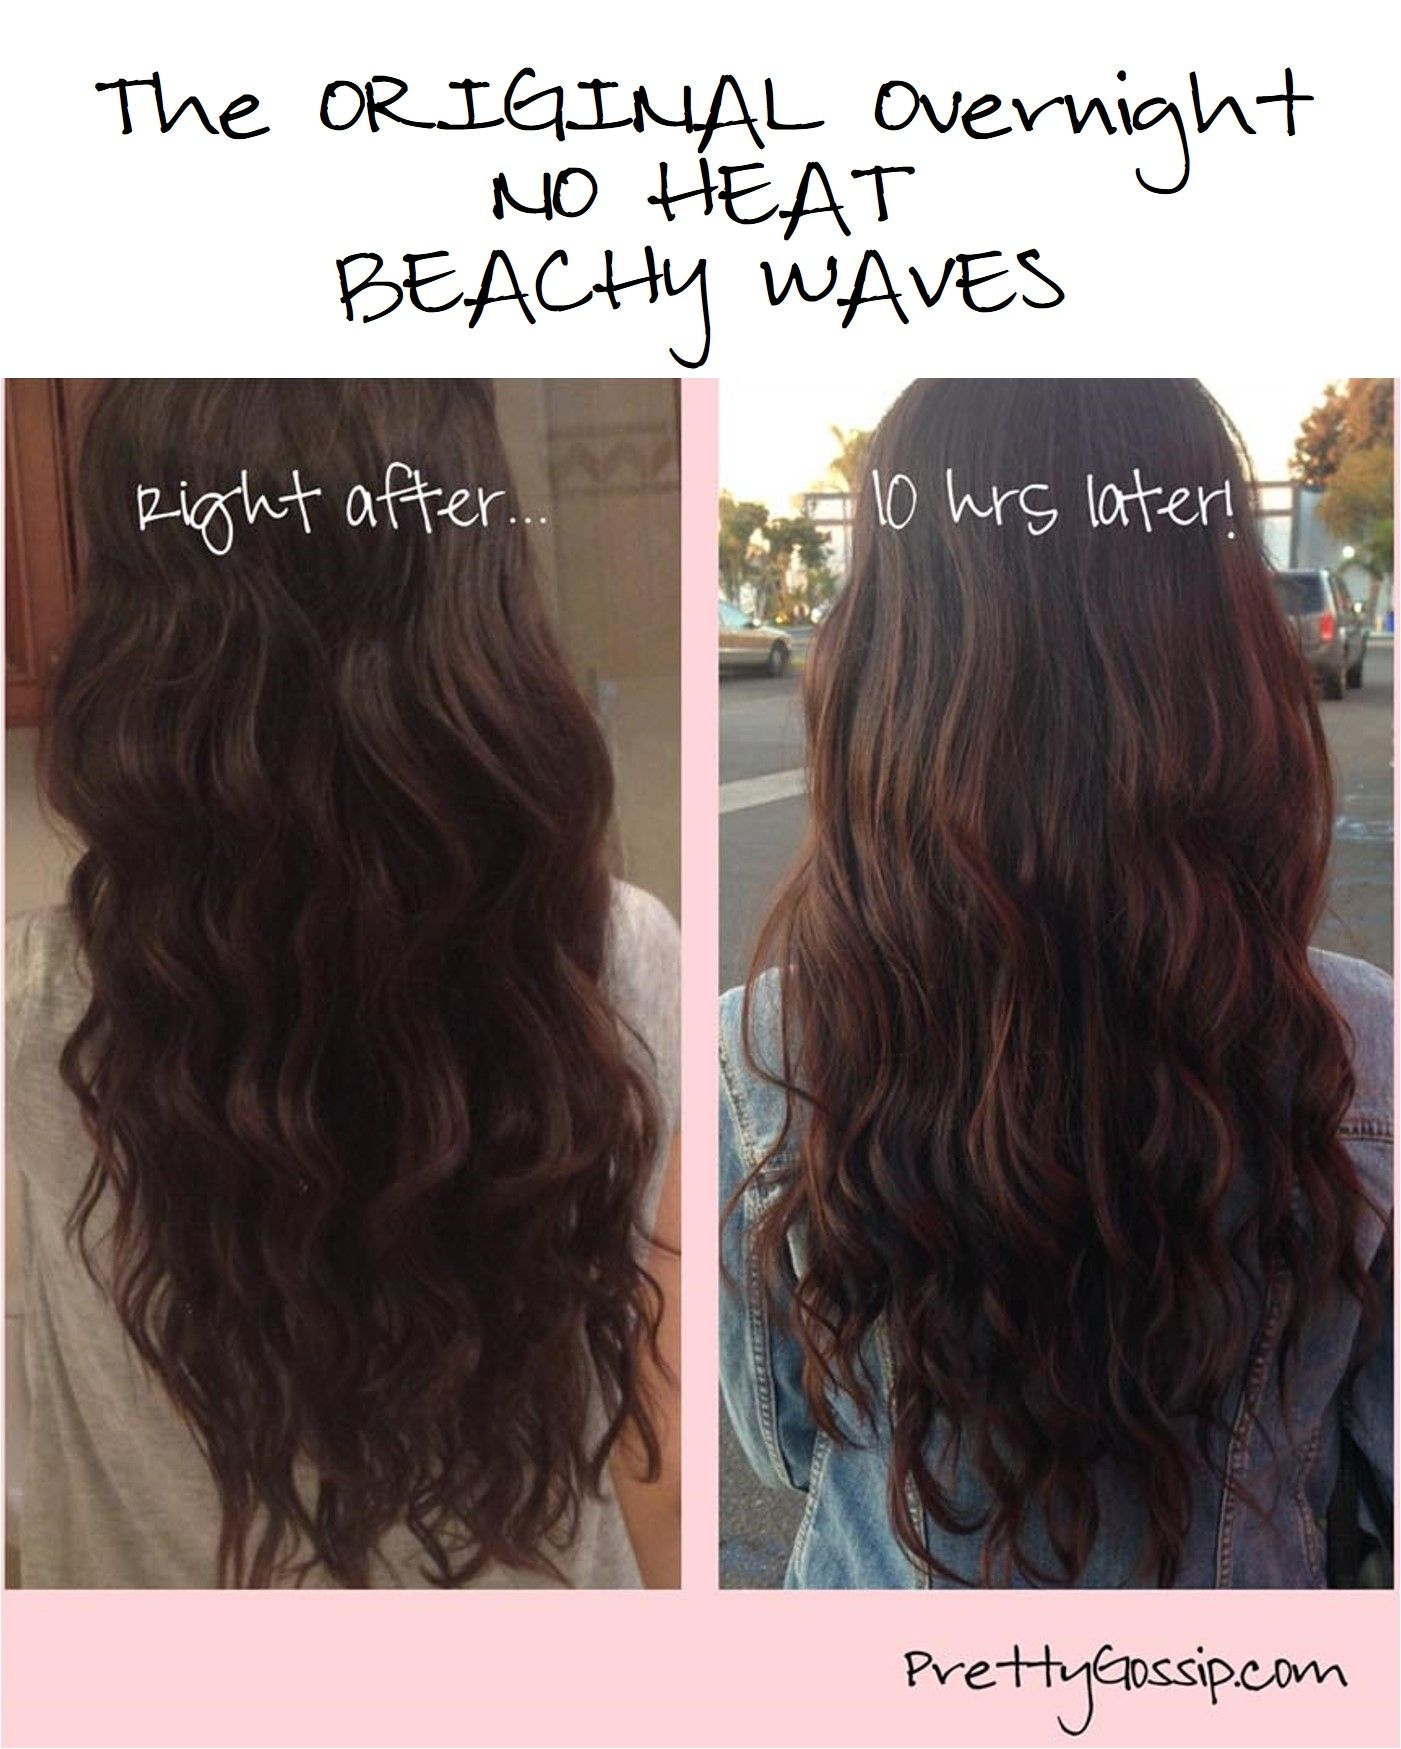 How To Get Beachy Waves With No Heat Wavy Hair Overnight Straight Wavy Hair Wavy Hairstyles Tutorial